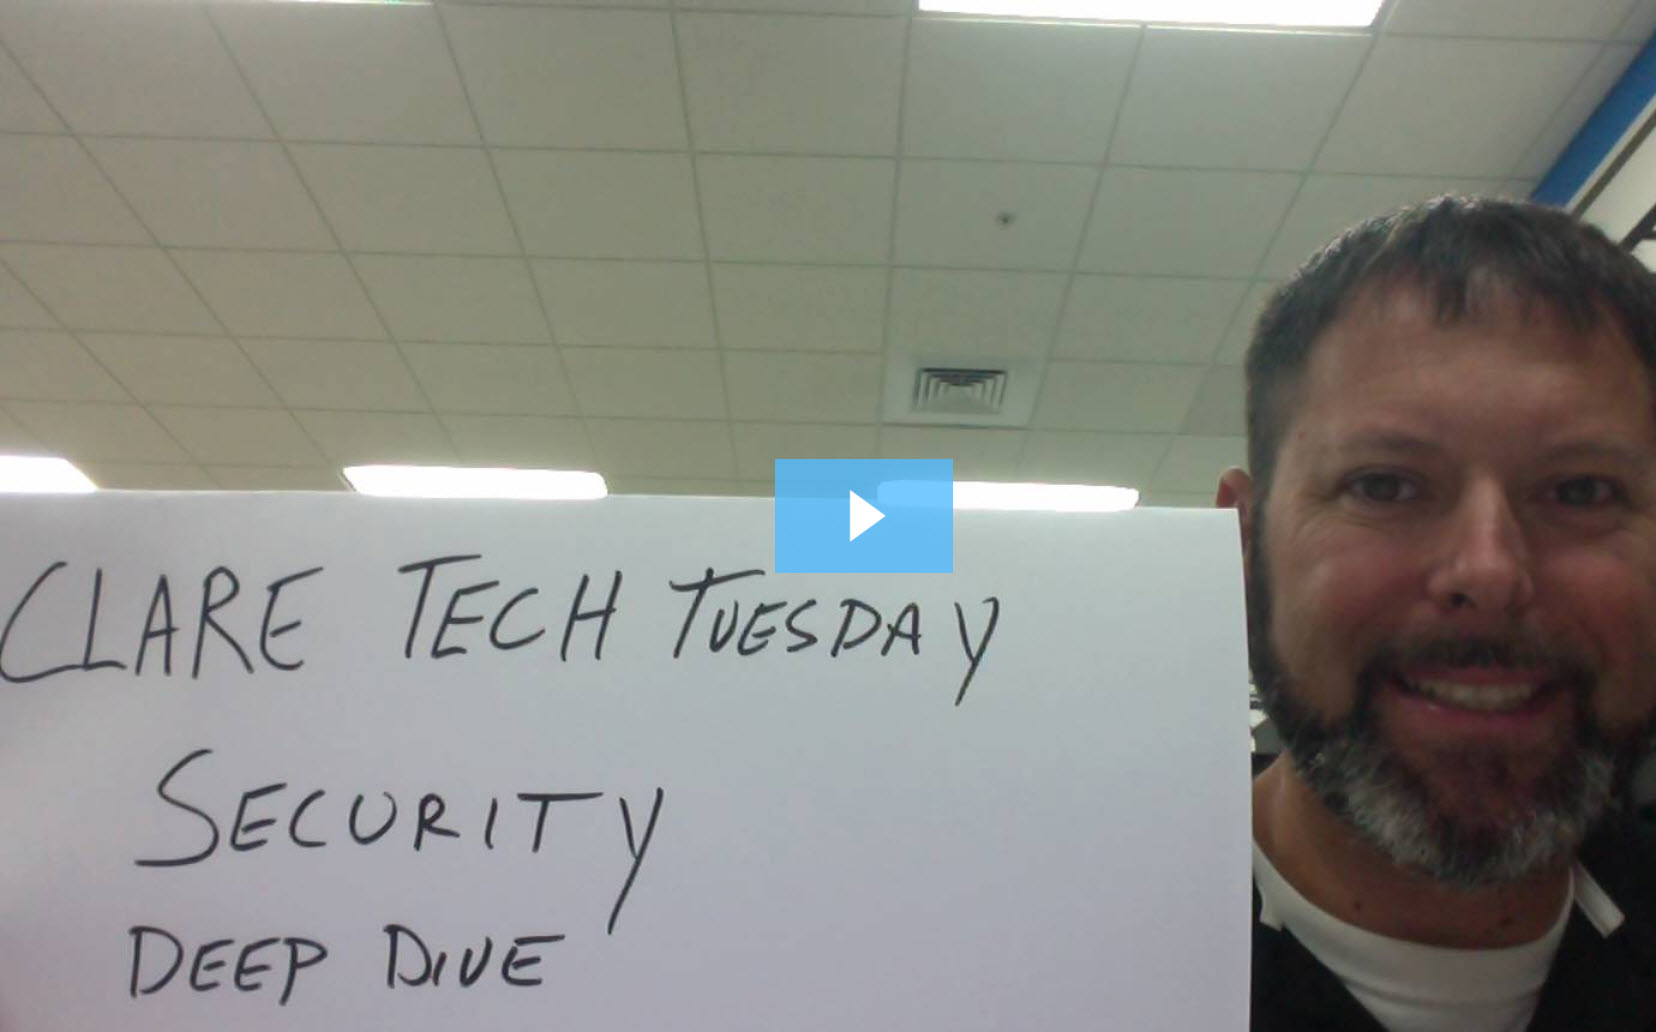 Clare Tech Tuesday: Security Deep Dive